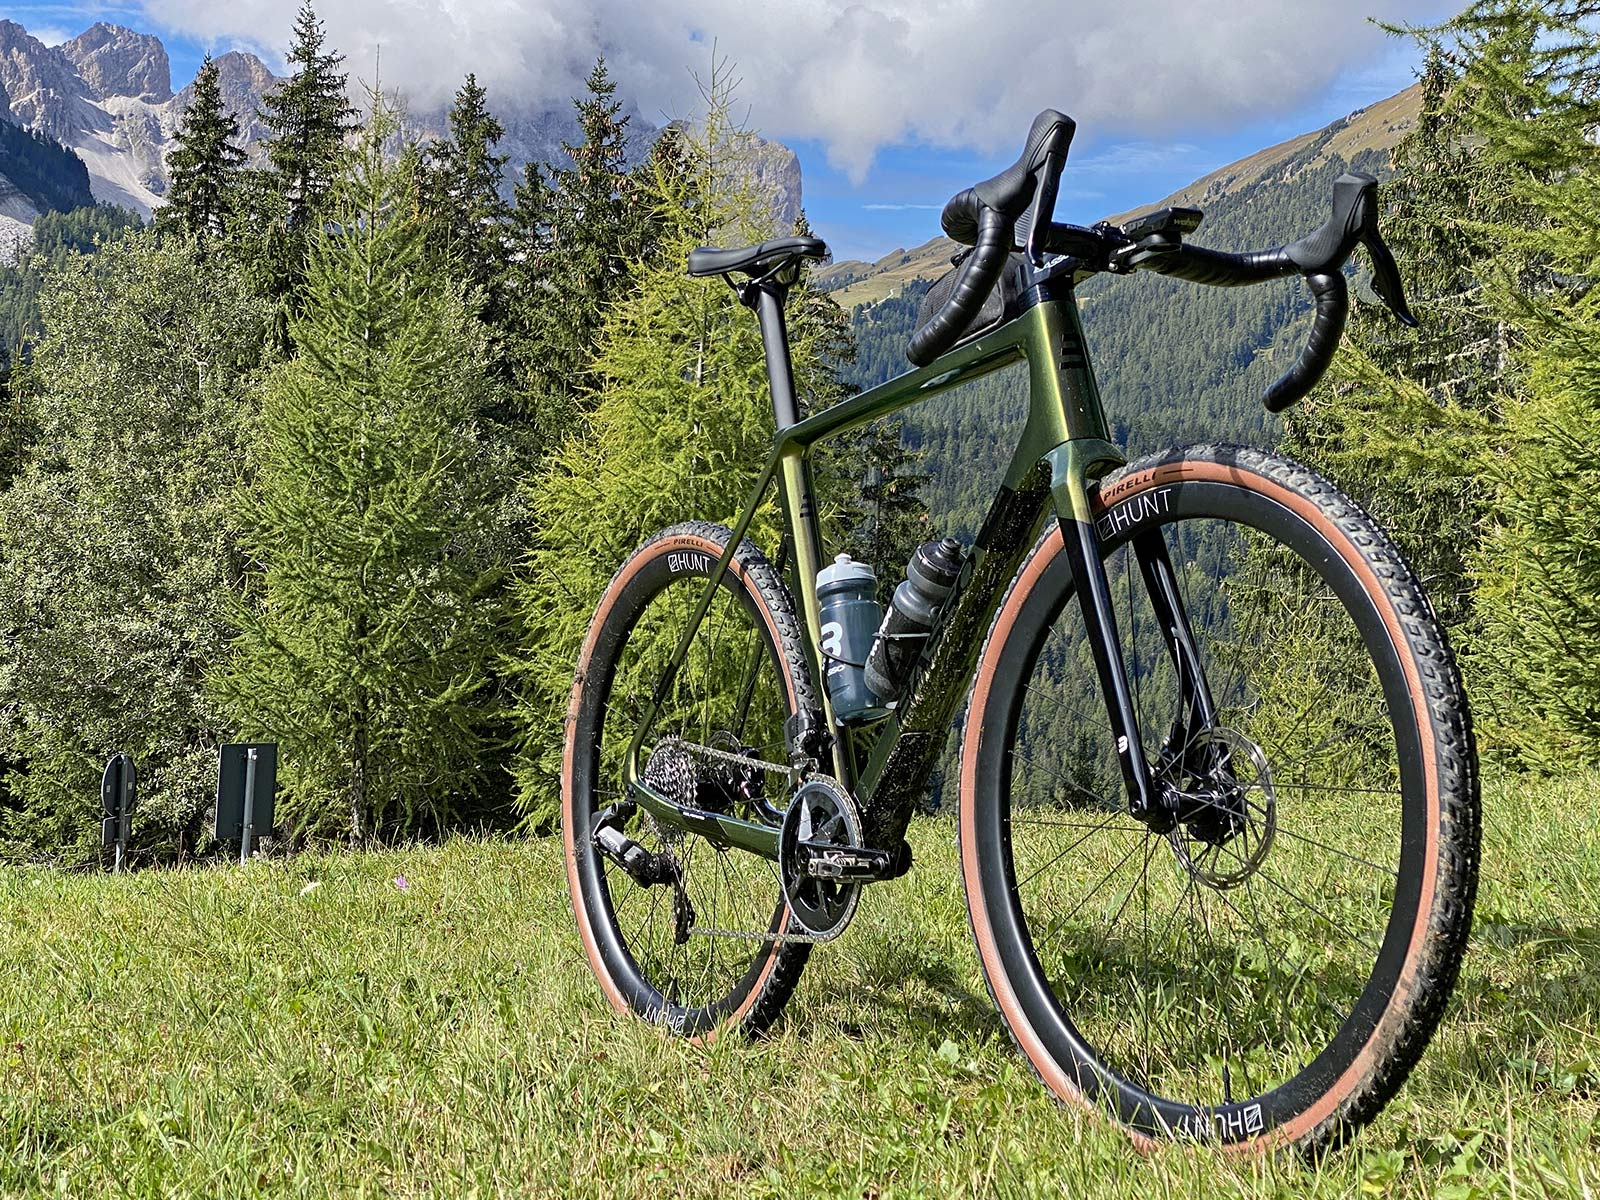 2022 Basso Palta II carbon gravel bike review made-in-Italy, angled